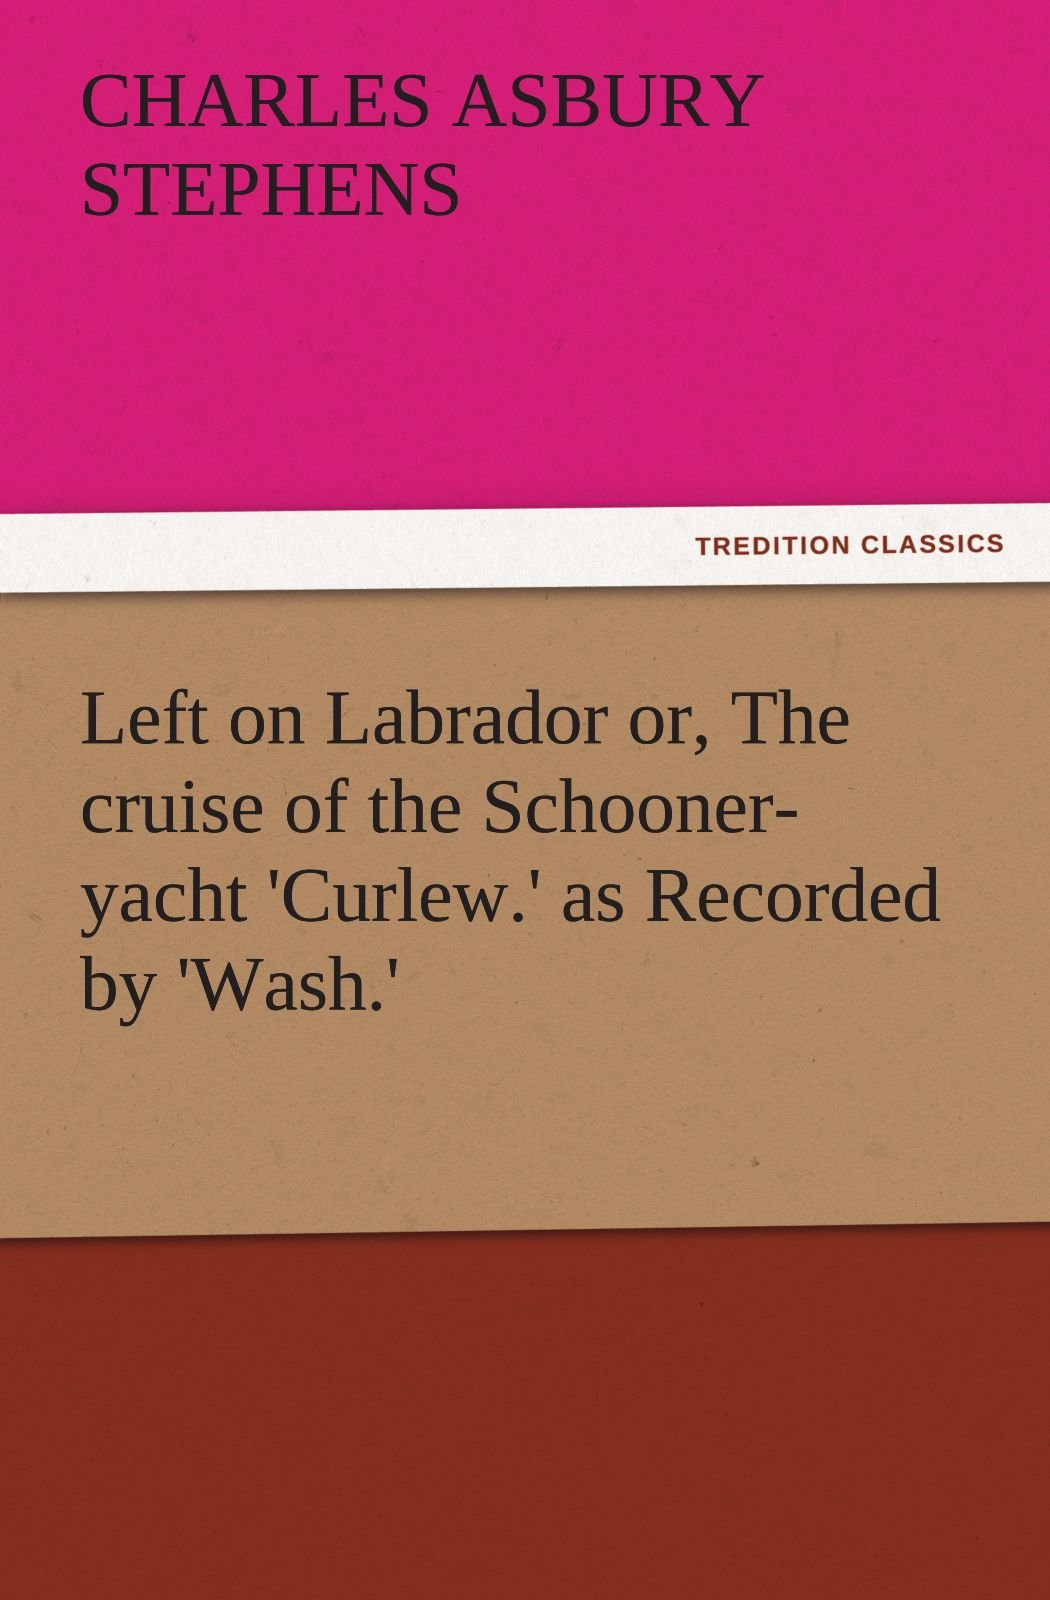 Download Left on Labrador or, The cruise of the Schooner-yacht 'Curlew.' as Recorded by 'Wash.' (TREDITION CLASSICS) PDF